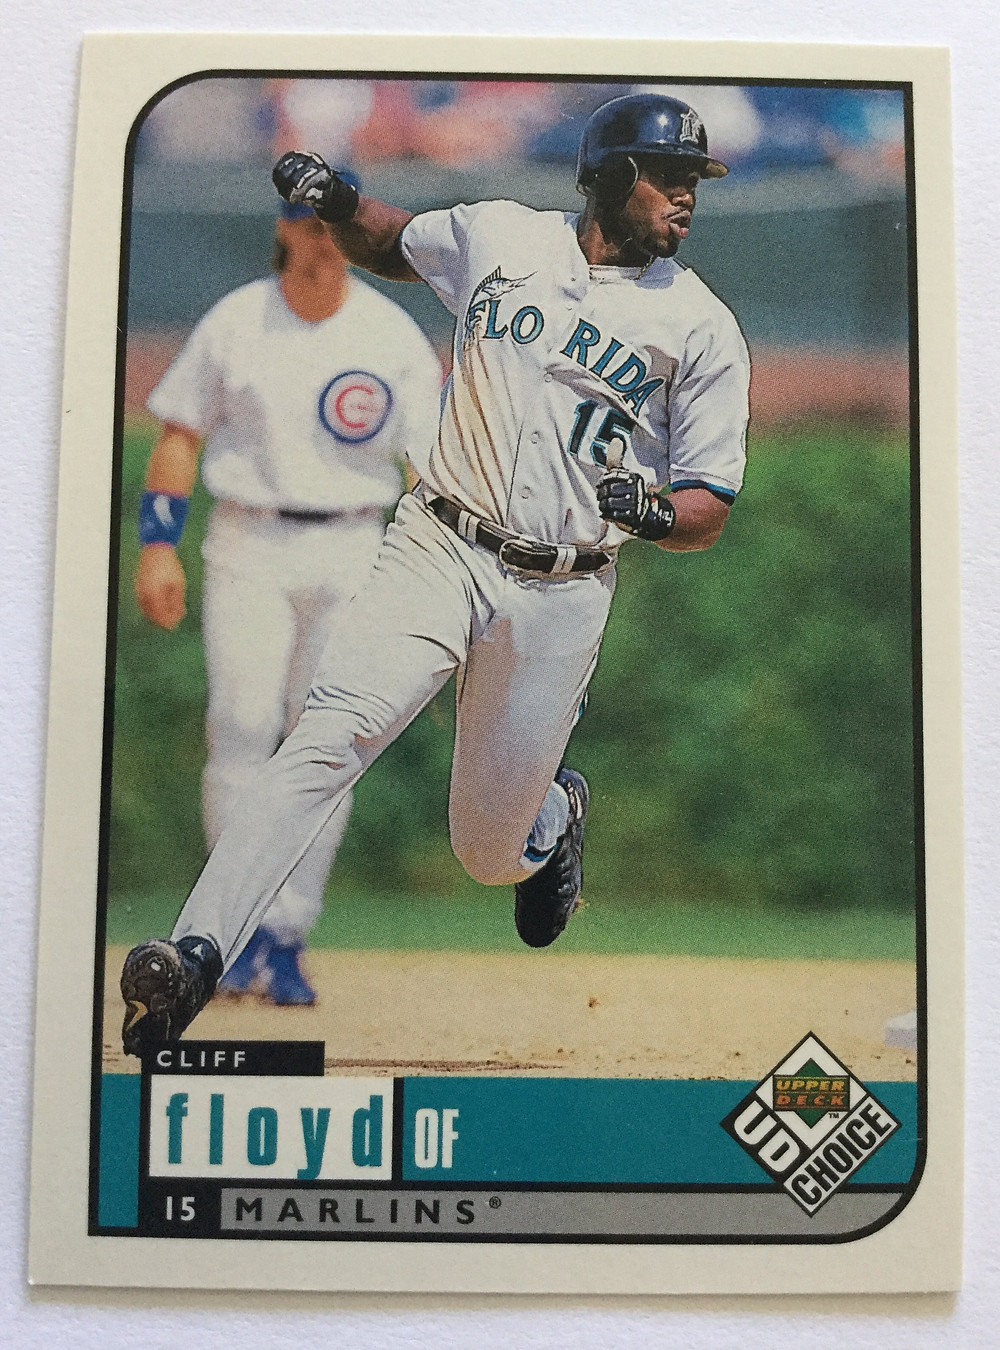 Cliff Floyd. Upper Deck Collector's Choice, 1999.